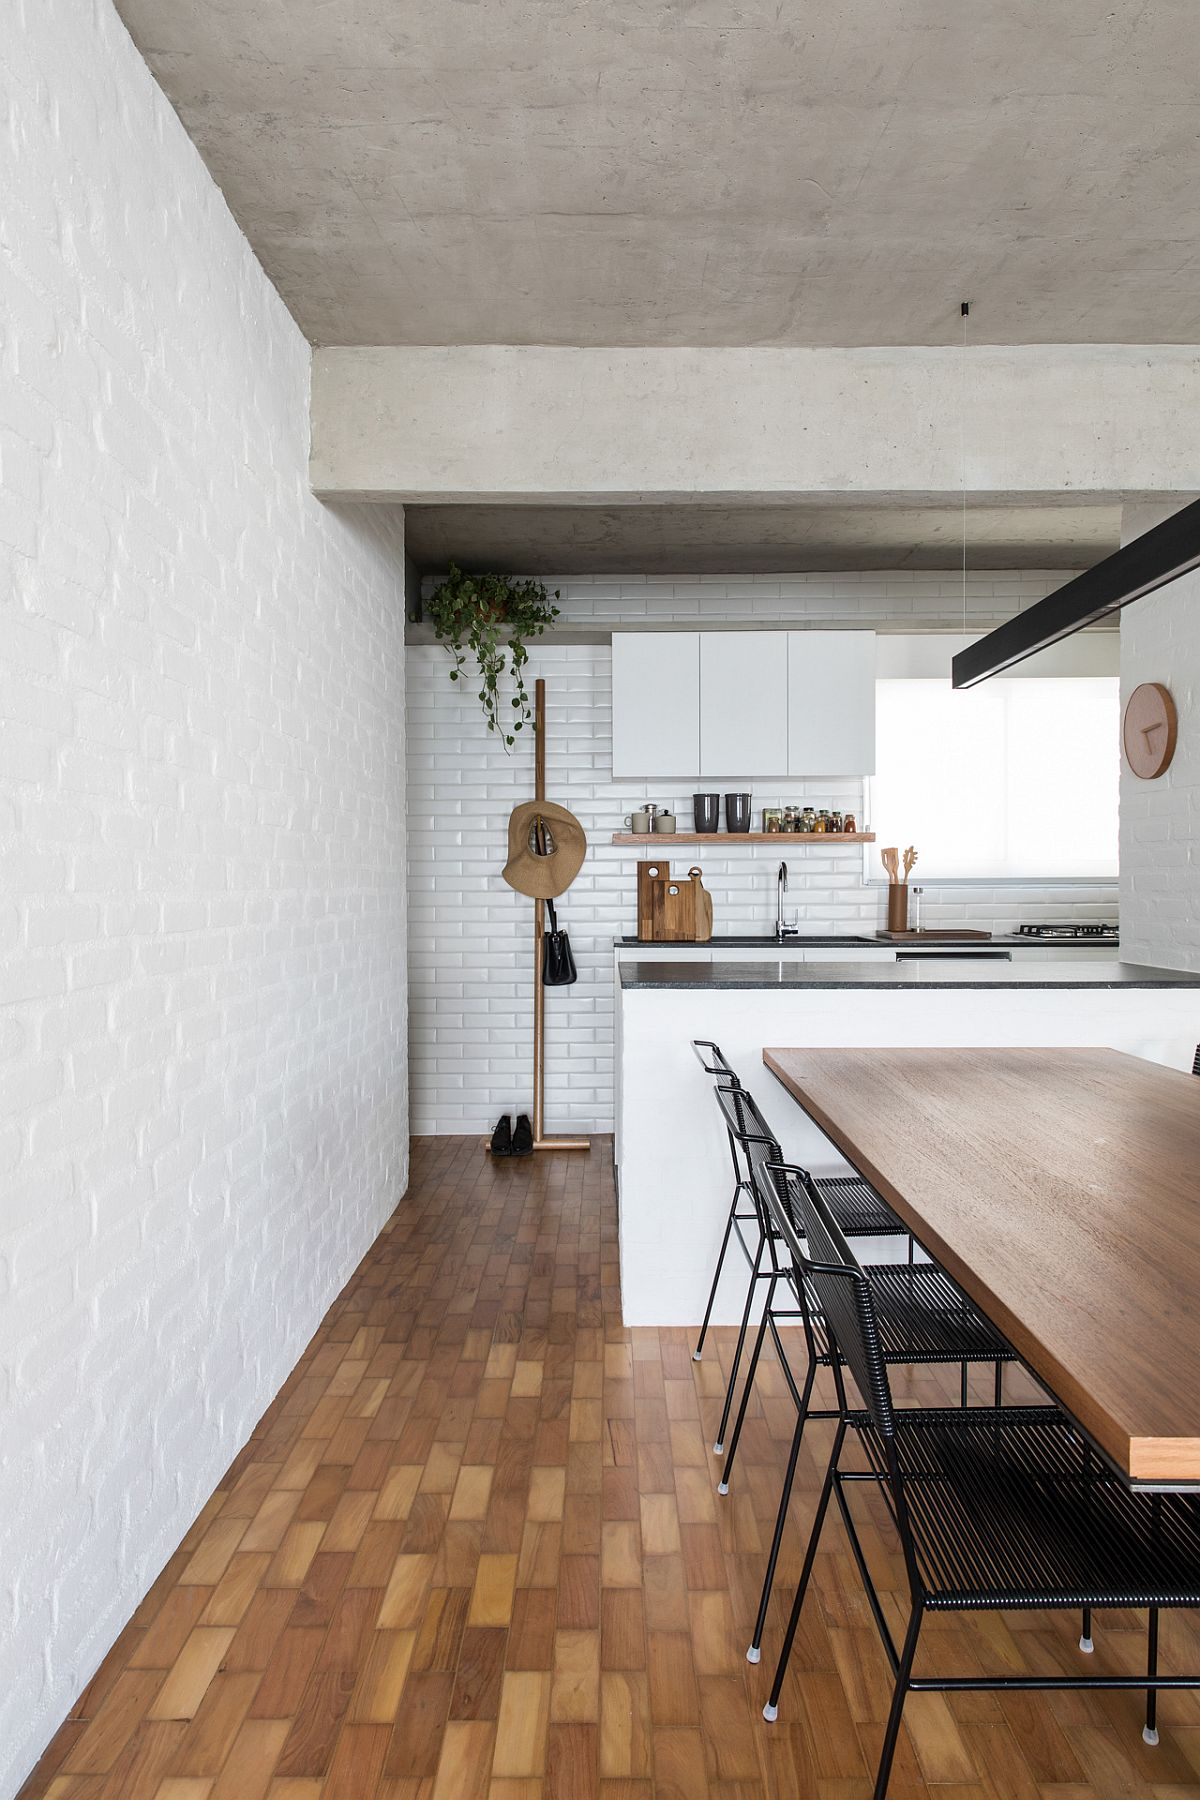 Space-savvy modern kitchen and dining room of the VCH Apartment in Sao Paulo